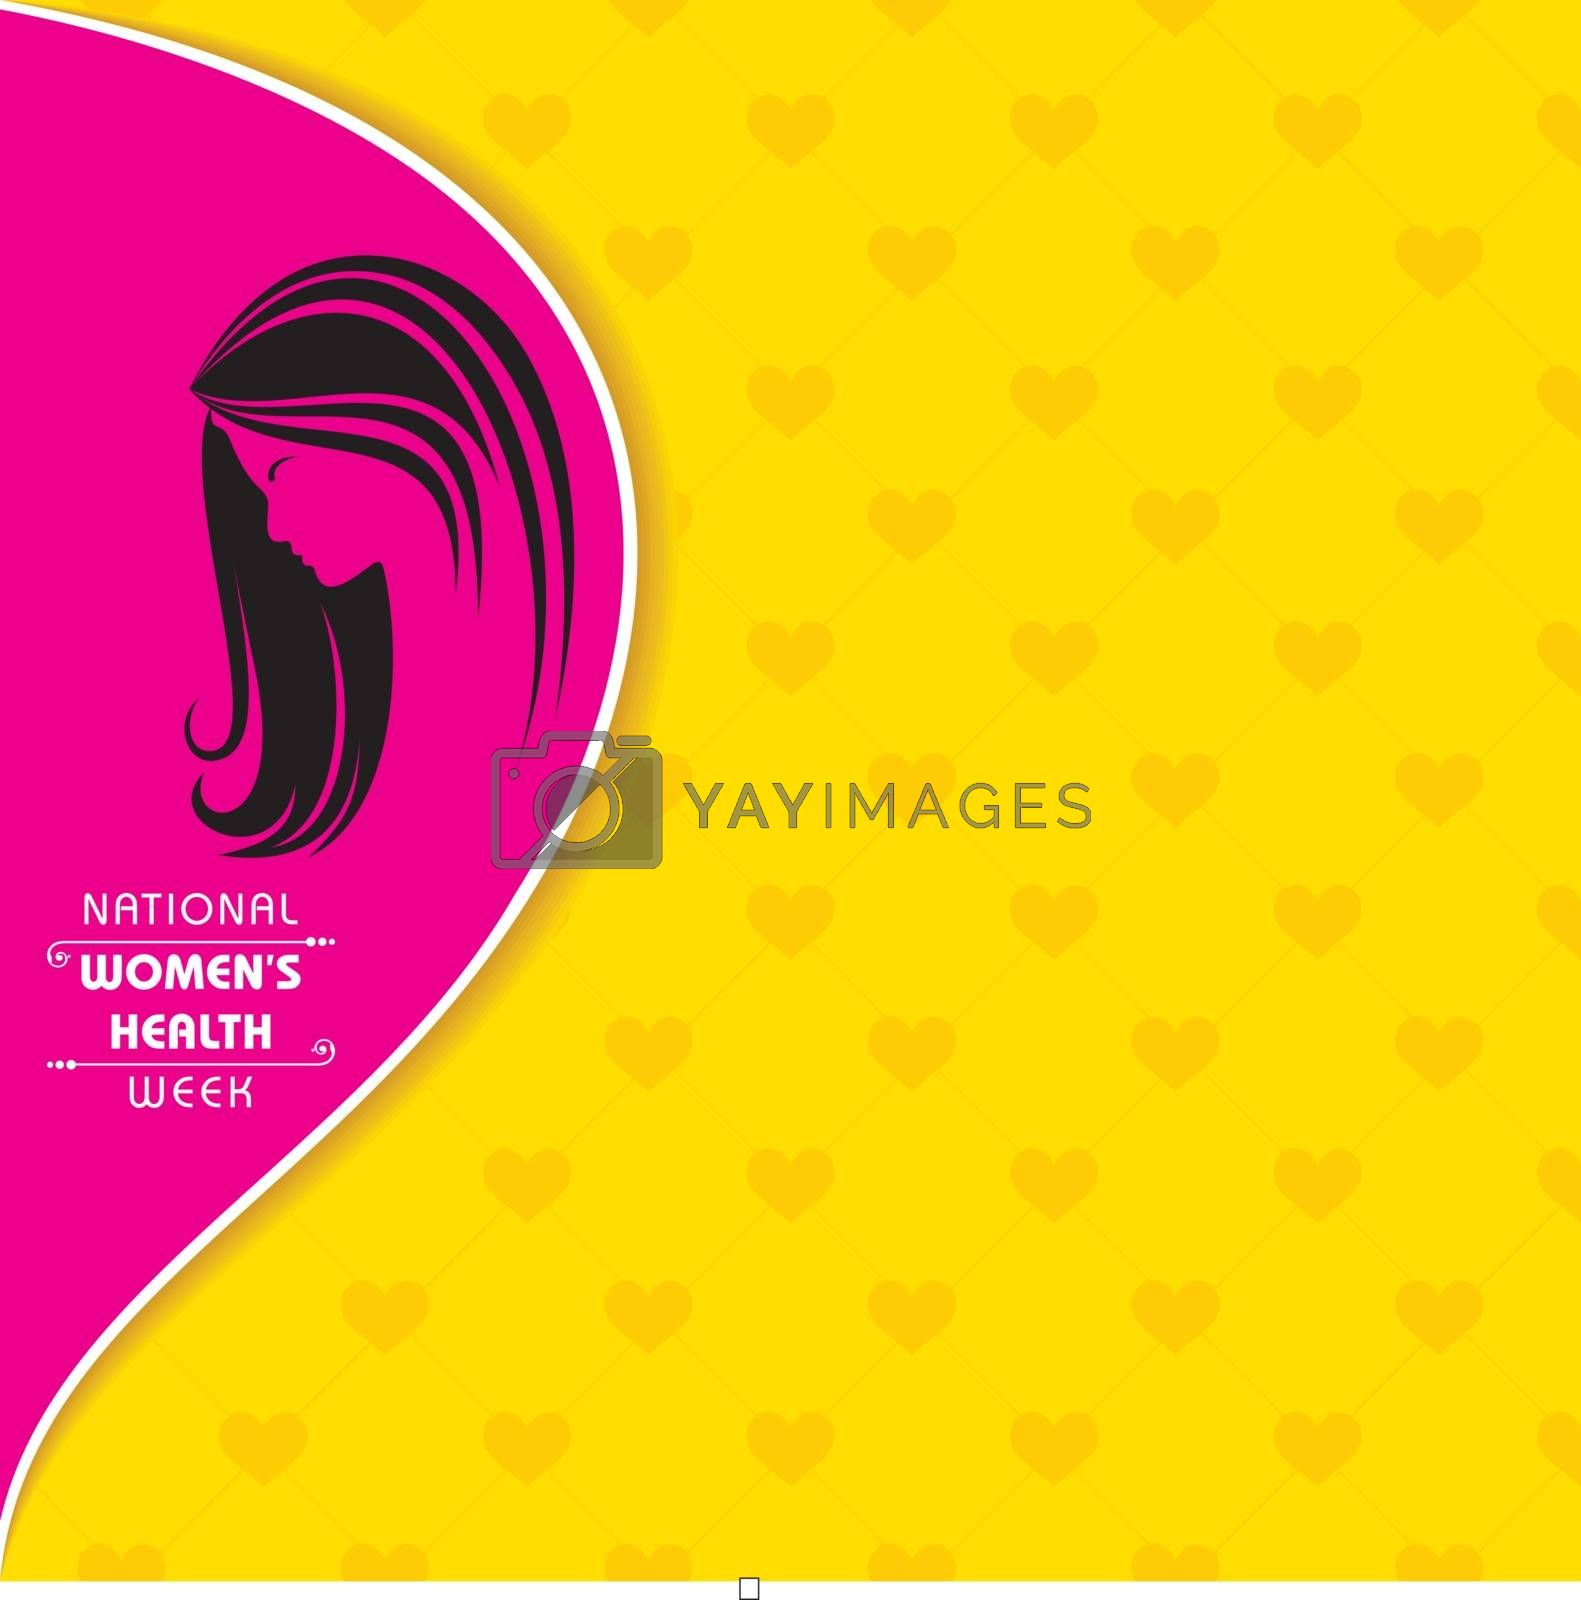 Vector illustration of National Women's health week begins on Mother's Day each year.